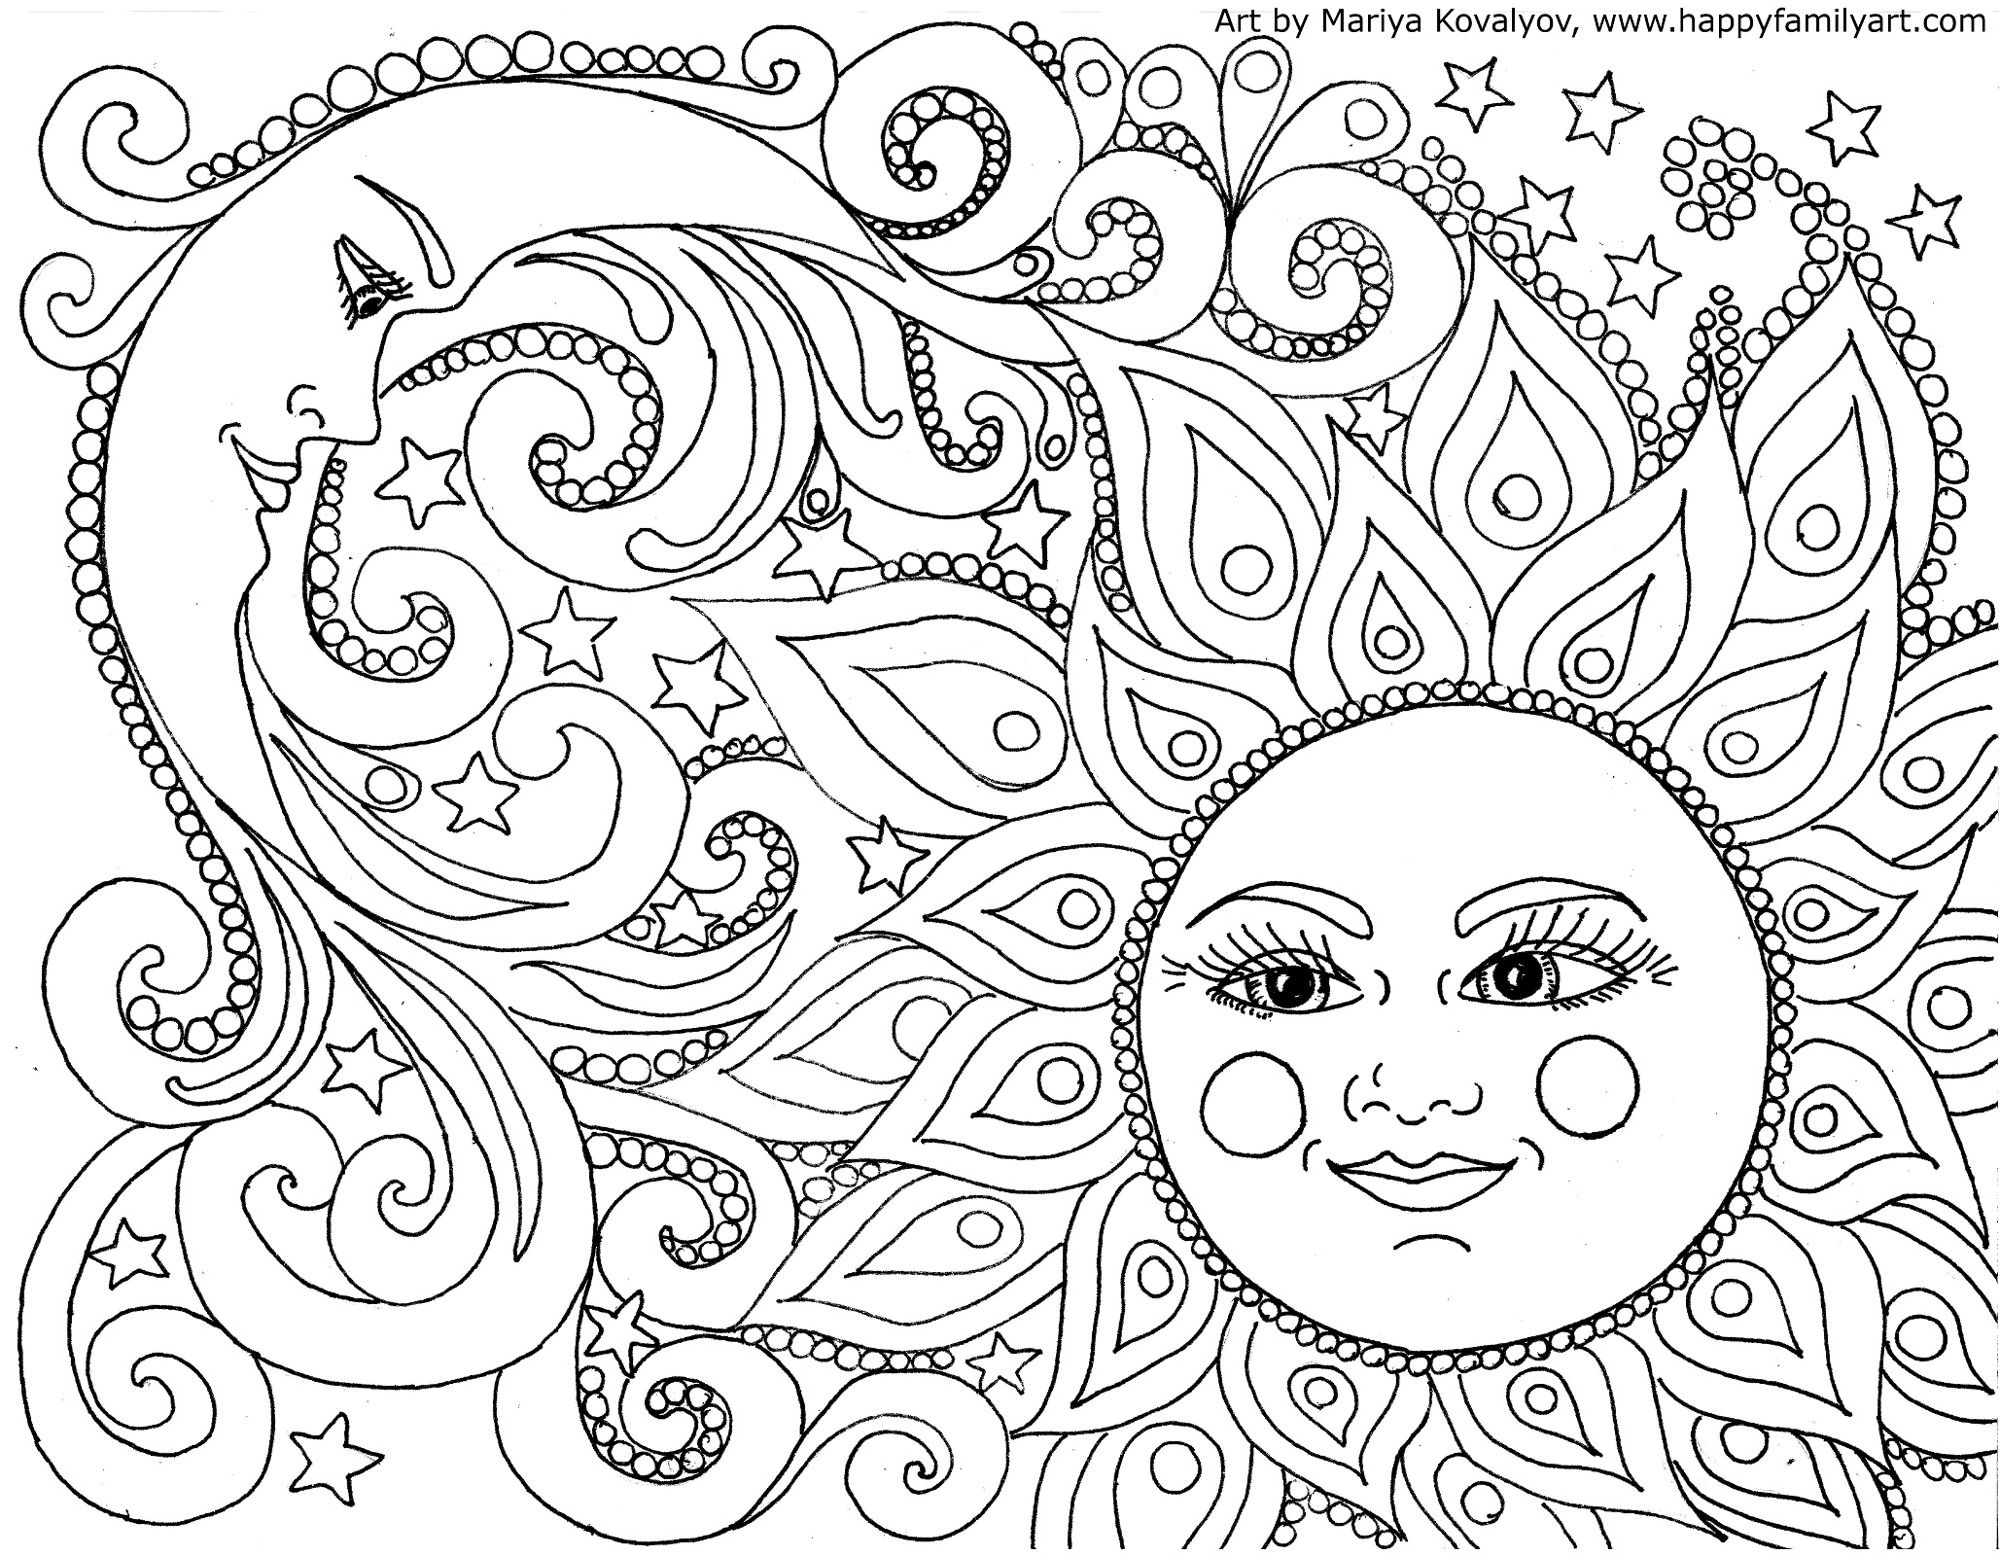 i made many great fun and original coloring pages color your heart out - Color Pages For Adults